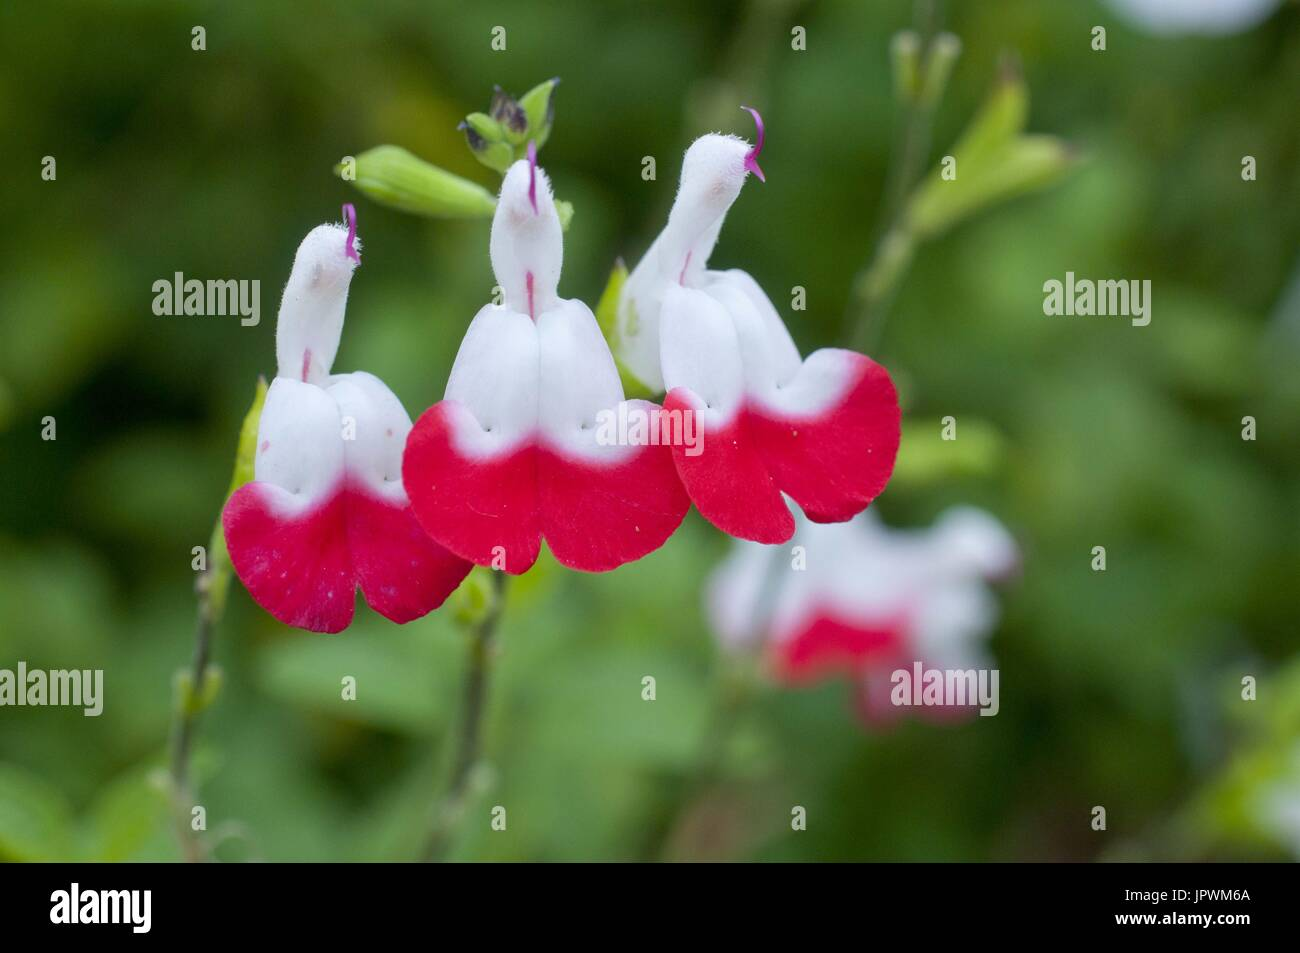 Sage 'Hot Lips' in bloom in a garden - Stock Image